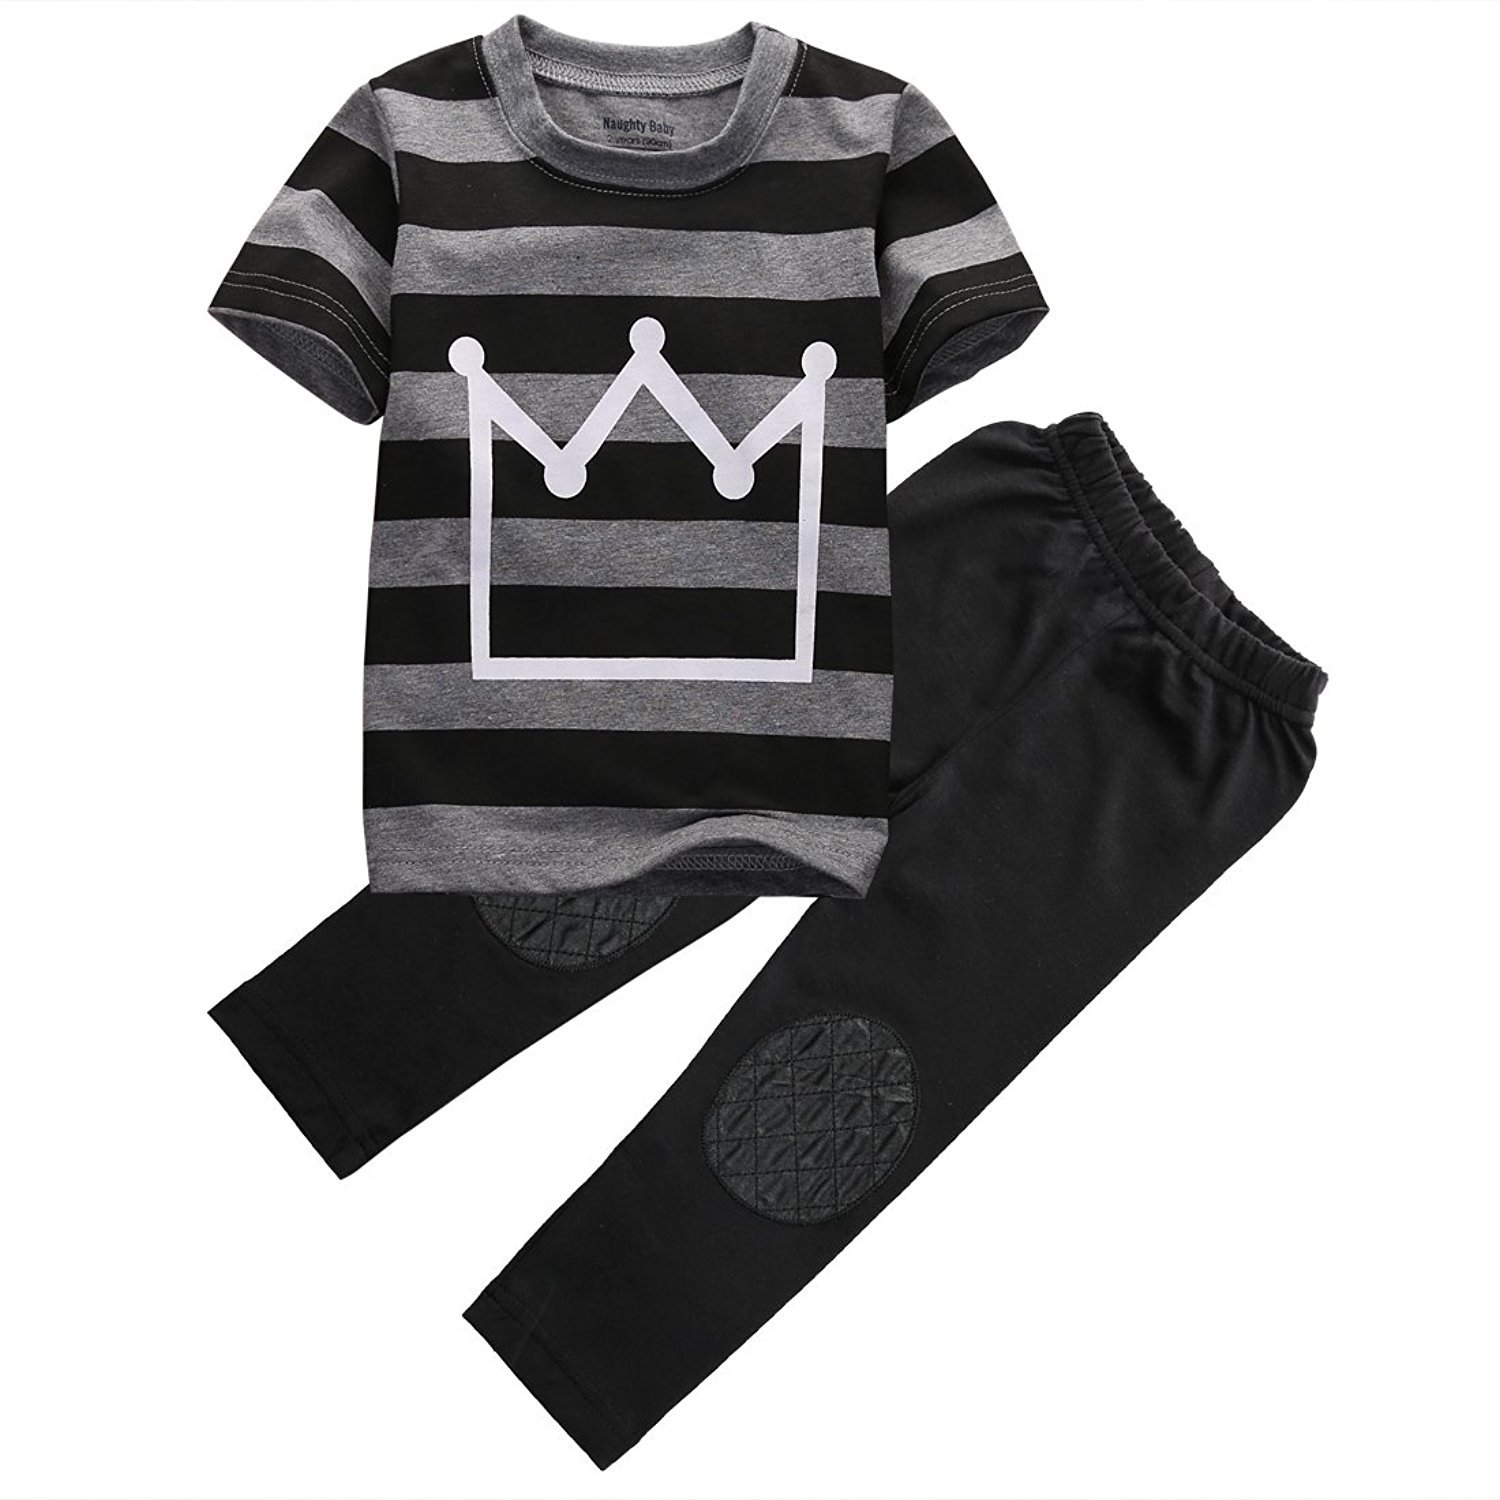 Happy Town 2pcs Little Boys Short Sleeve Striped Crown Print T-Shirt and Pants Outfit Summer Clothes